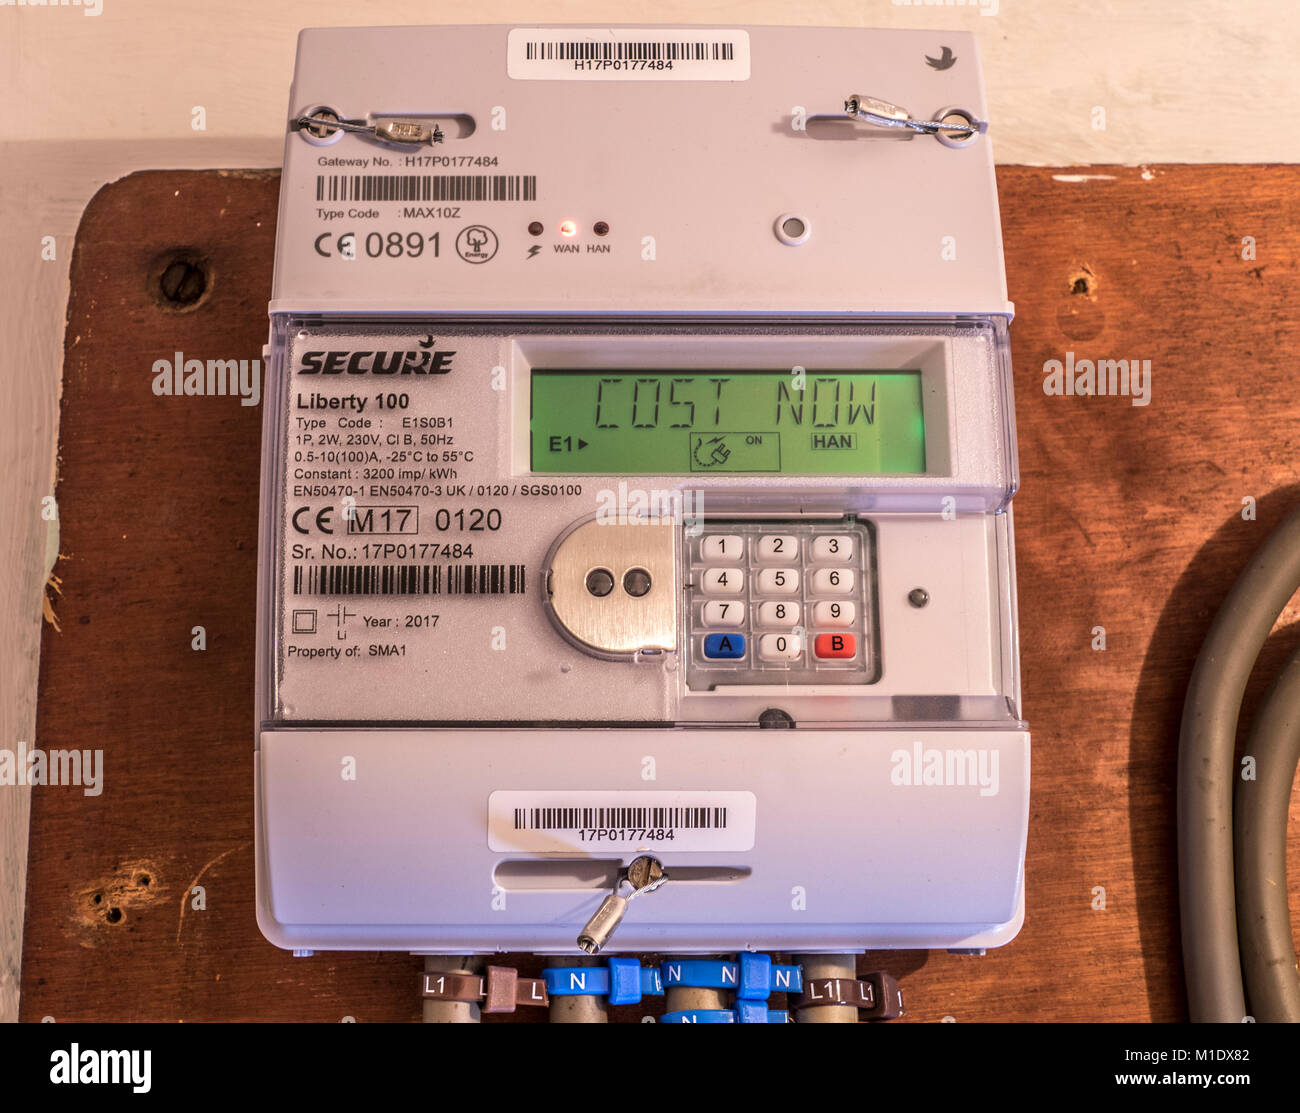 Secure Liberty 100 smart electricity meter, measuring consumption and relaying 'Cost Now' information via - Stock Image